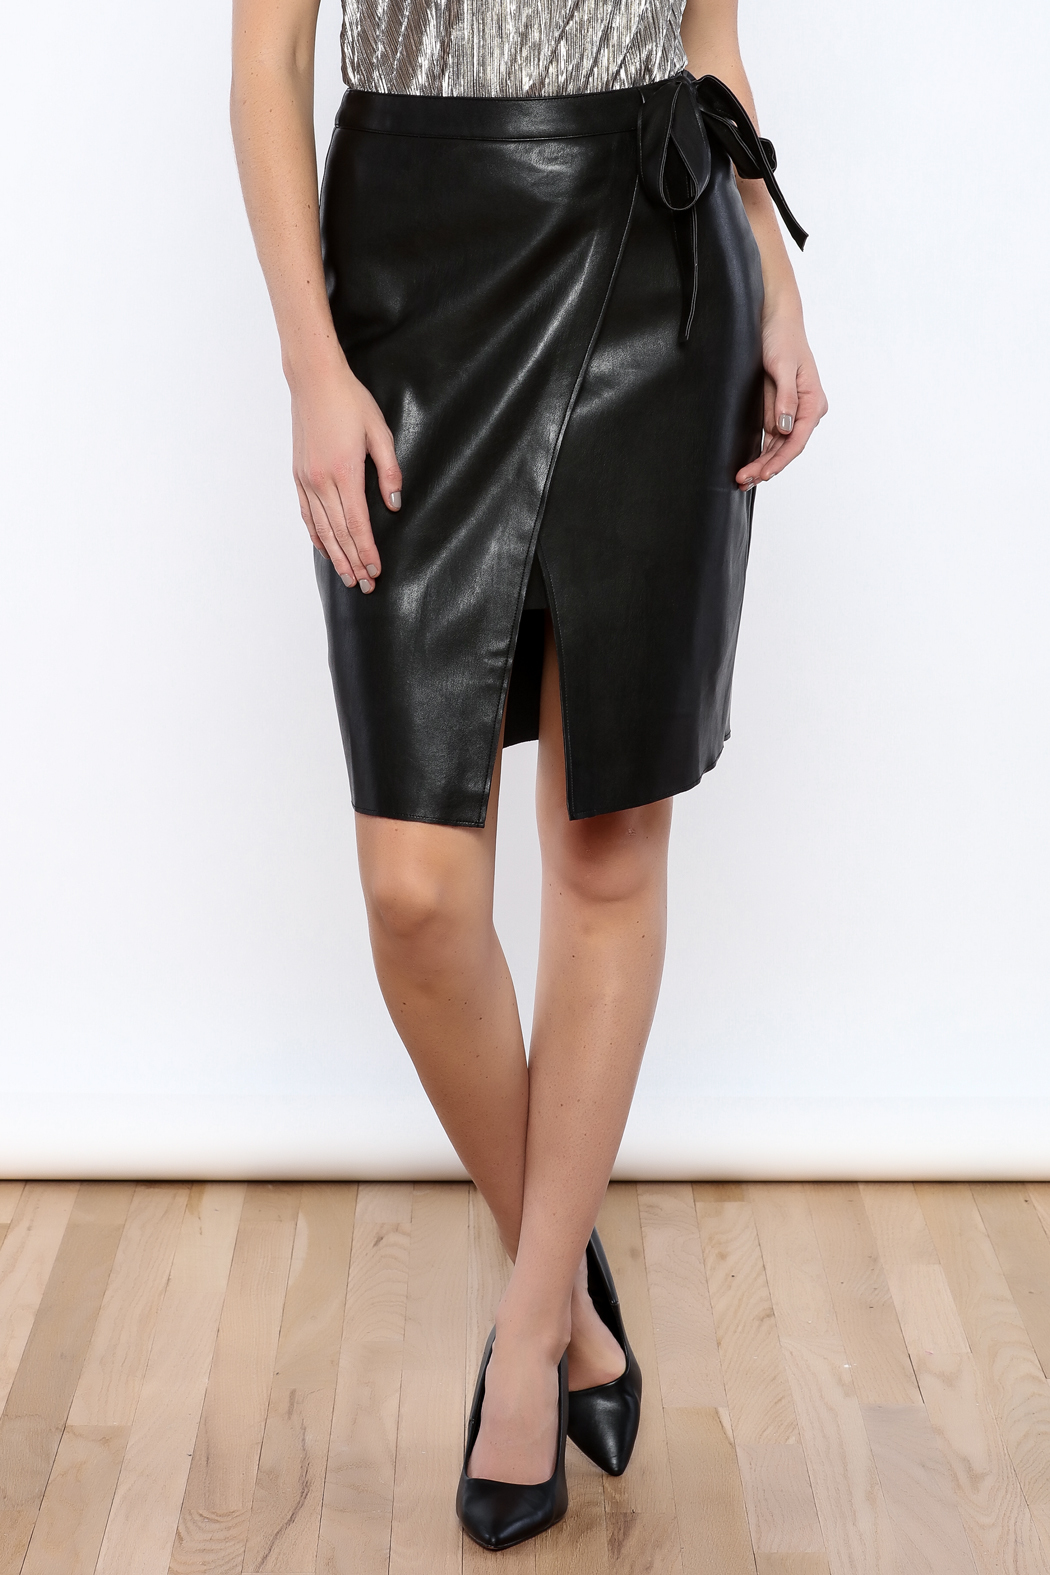 NUDE Faux Leather Wrap Skirt from San Diego by Pretty Seven ...